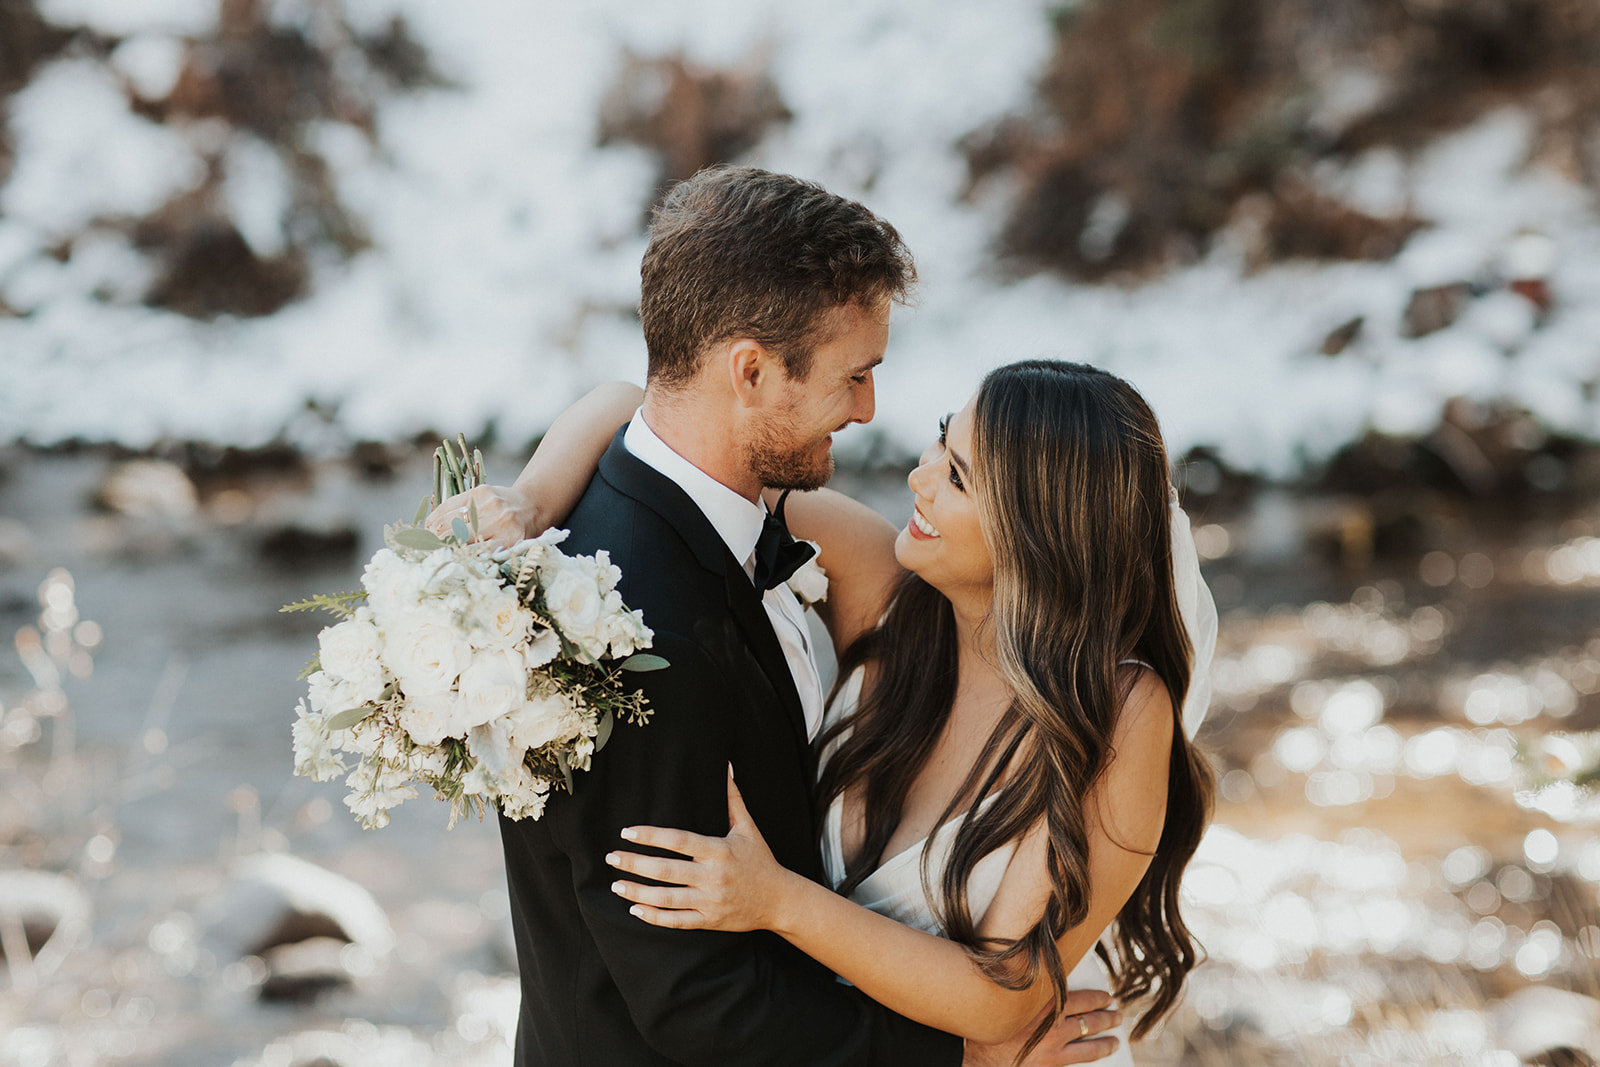 20191026 Sonnenalp Wedding photos Colorado Wedding Photographer31